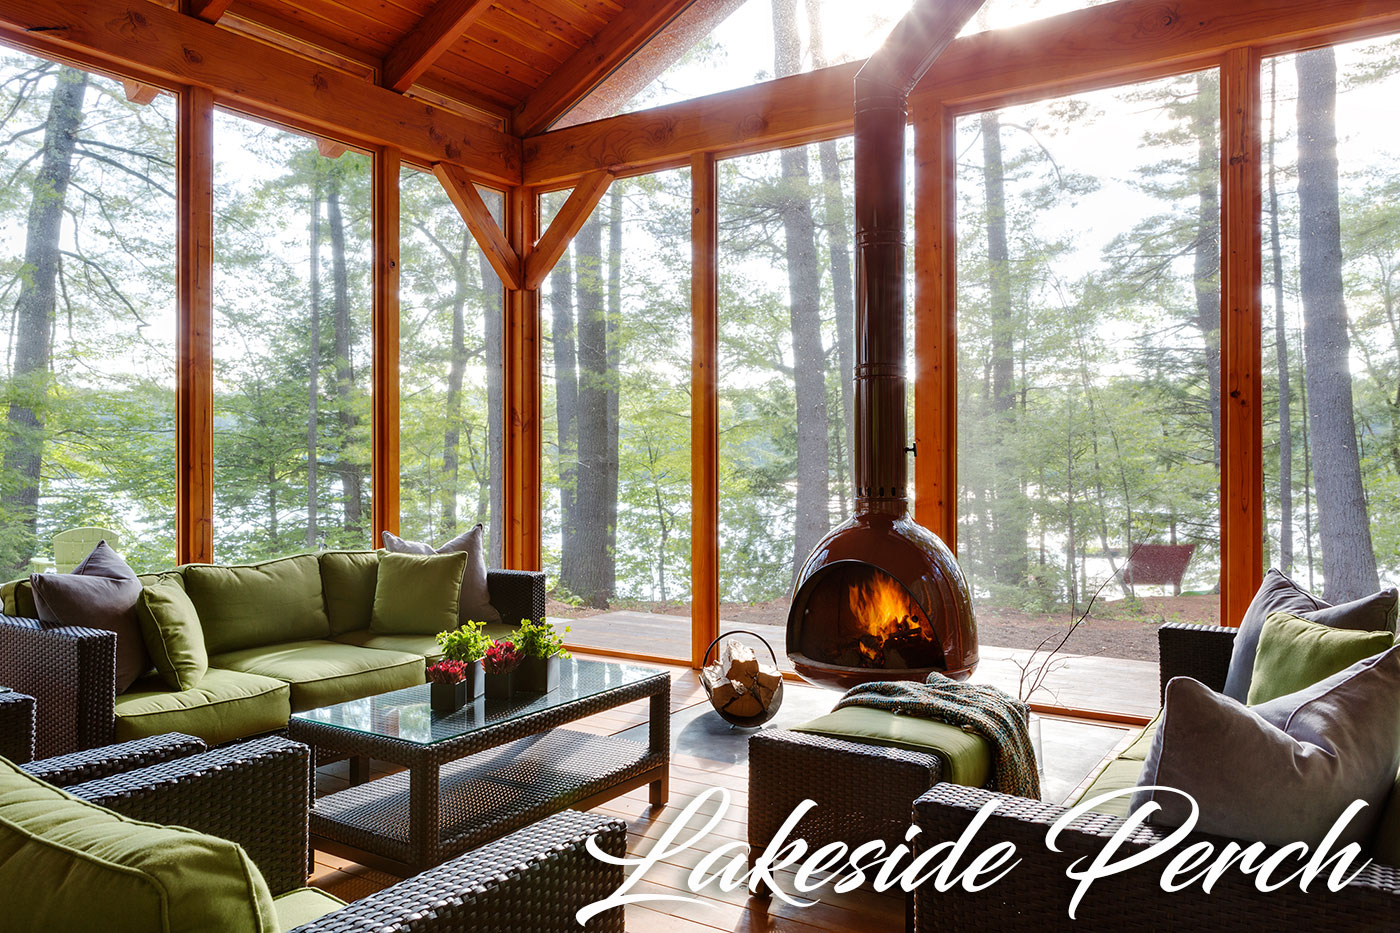 Lakeside screened porch by LDa Architecture & Interiors